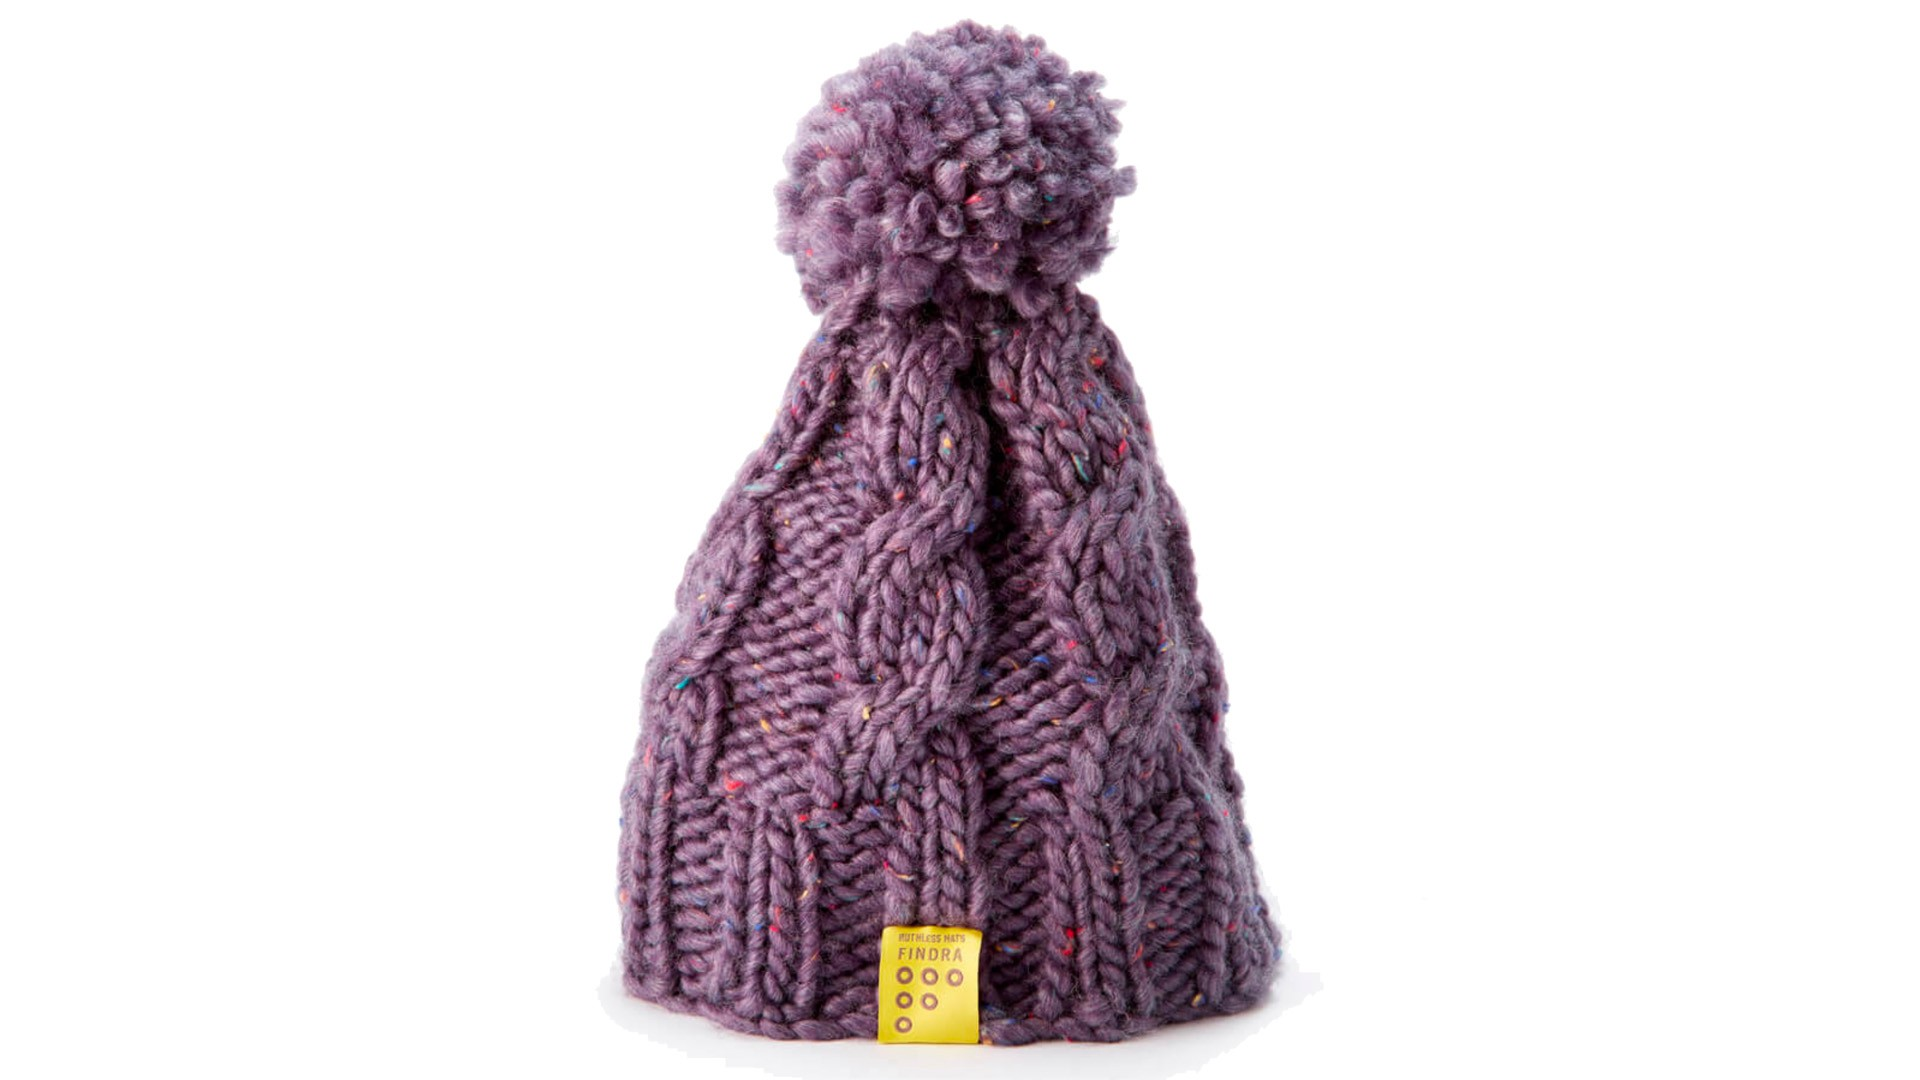 A super-snug post-ride beanie from Findra